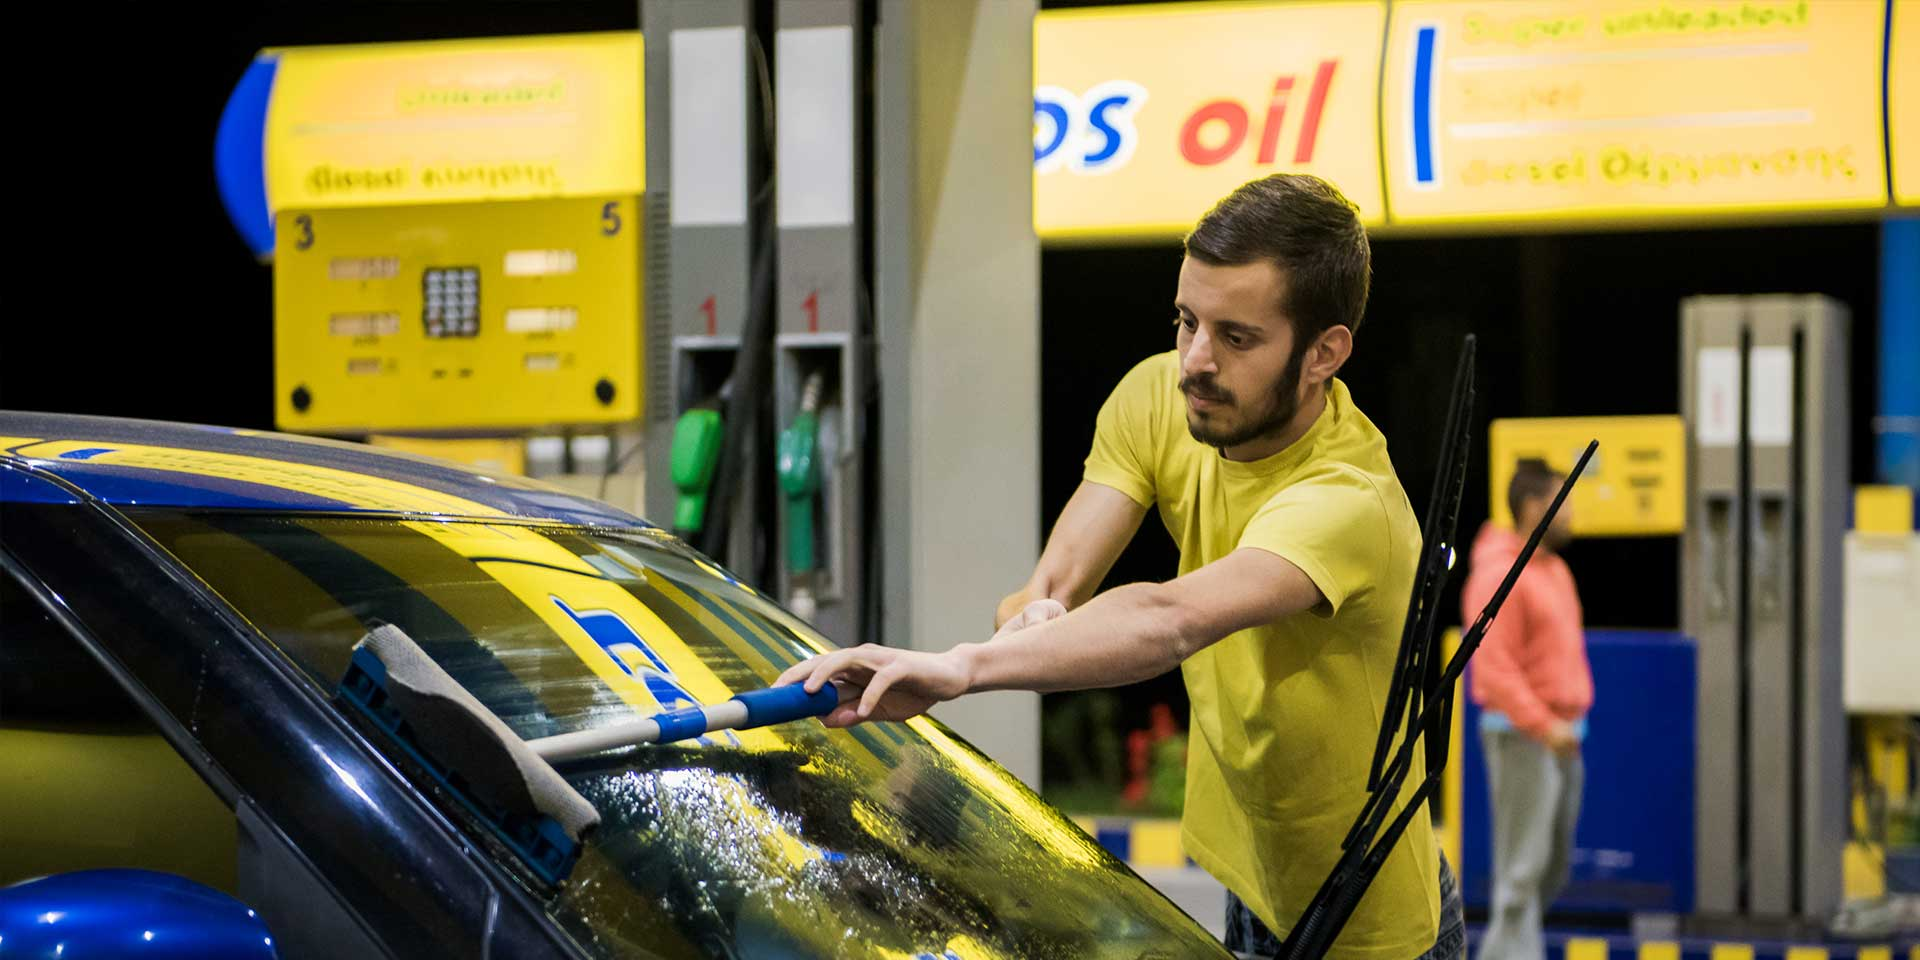 Totos Oil - 24 hour Gas station in Zakinthos | Car wash services in Ζante - 24 ωρο βενζινάδικο στην Ζάκυνθο | Πλυντήριο αυτοκινήτων στην Ζάκυνθο.